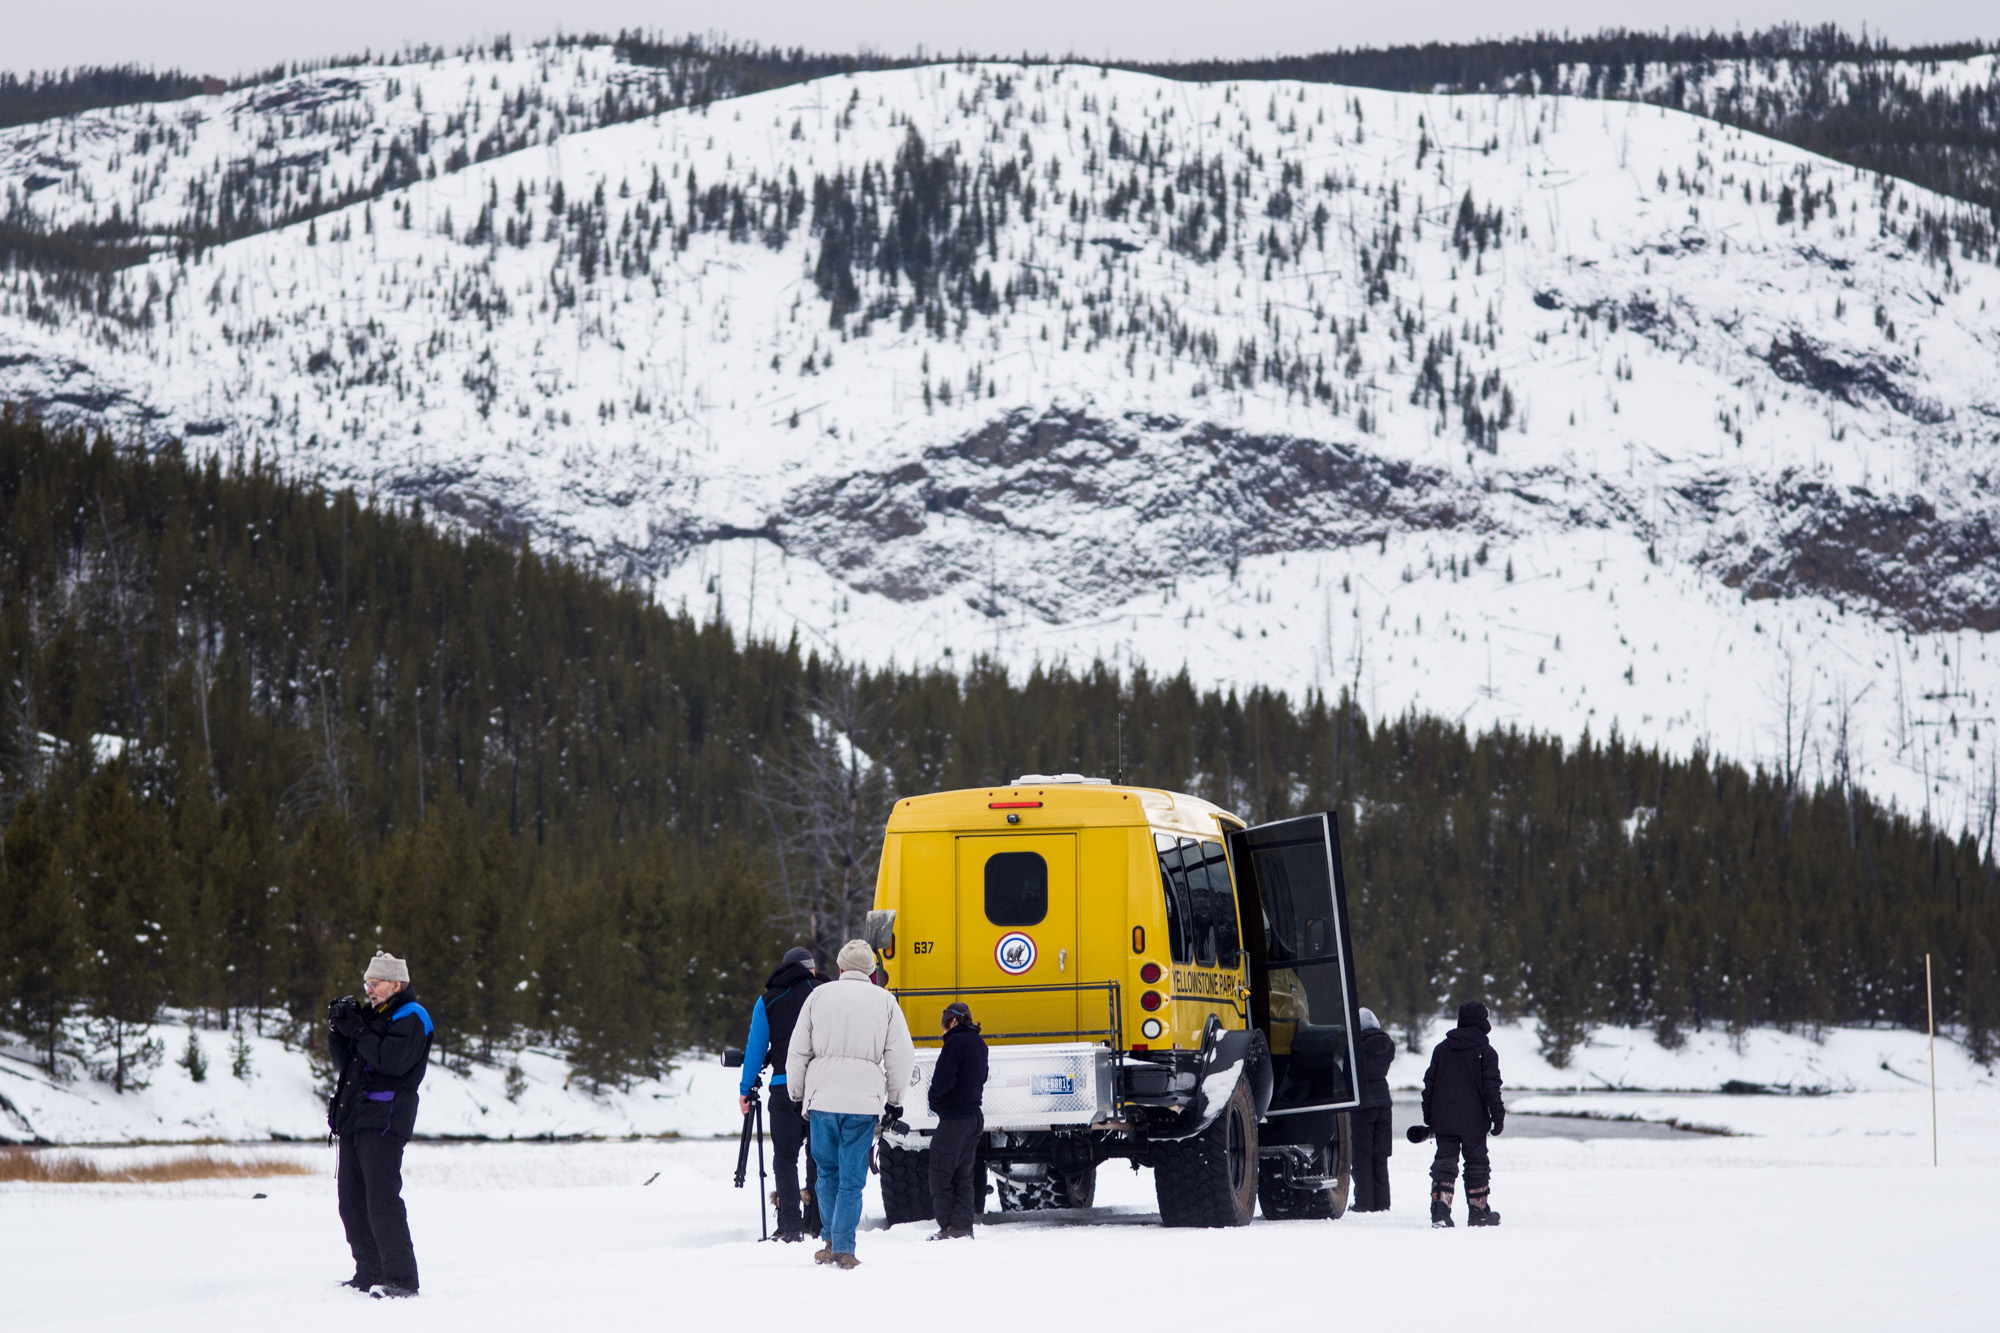 Photographers and the Yellow Snowcoach